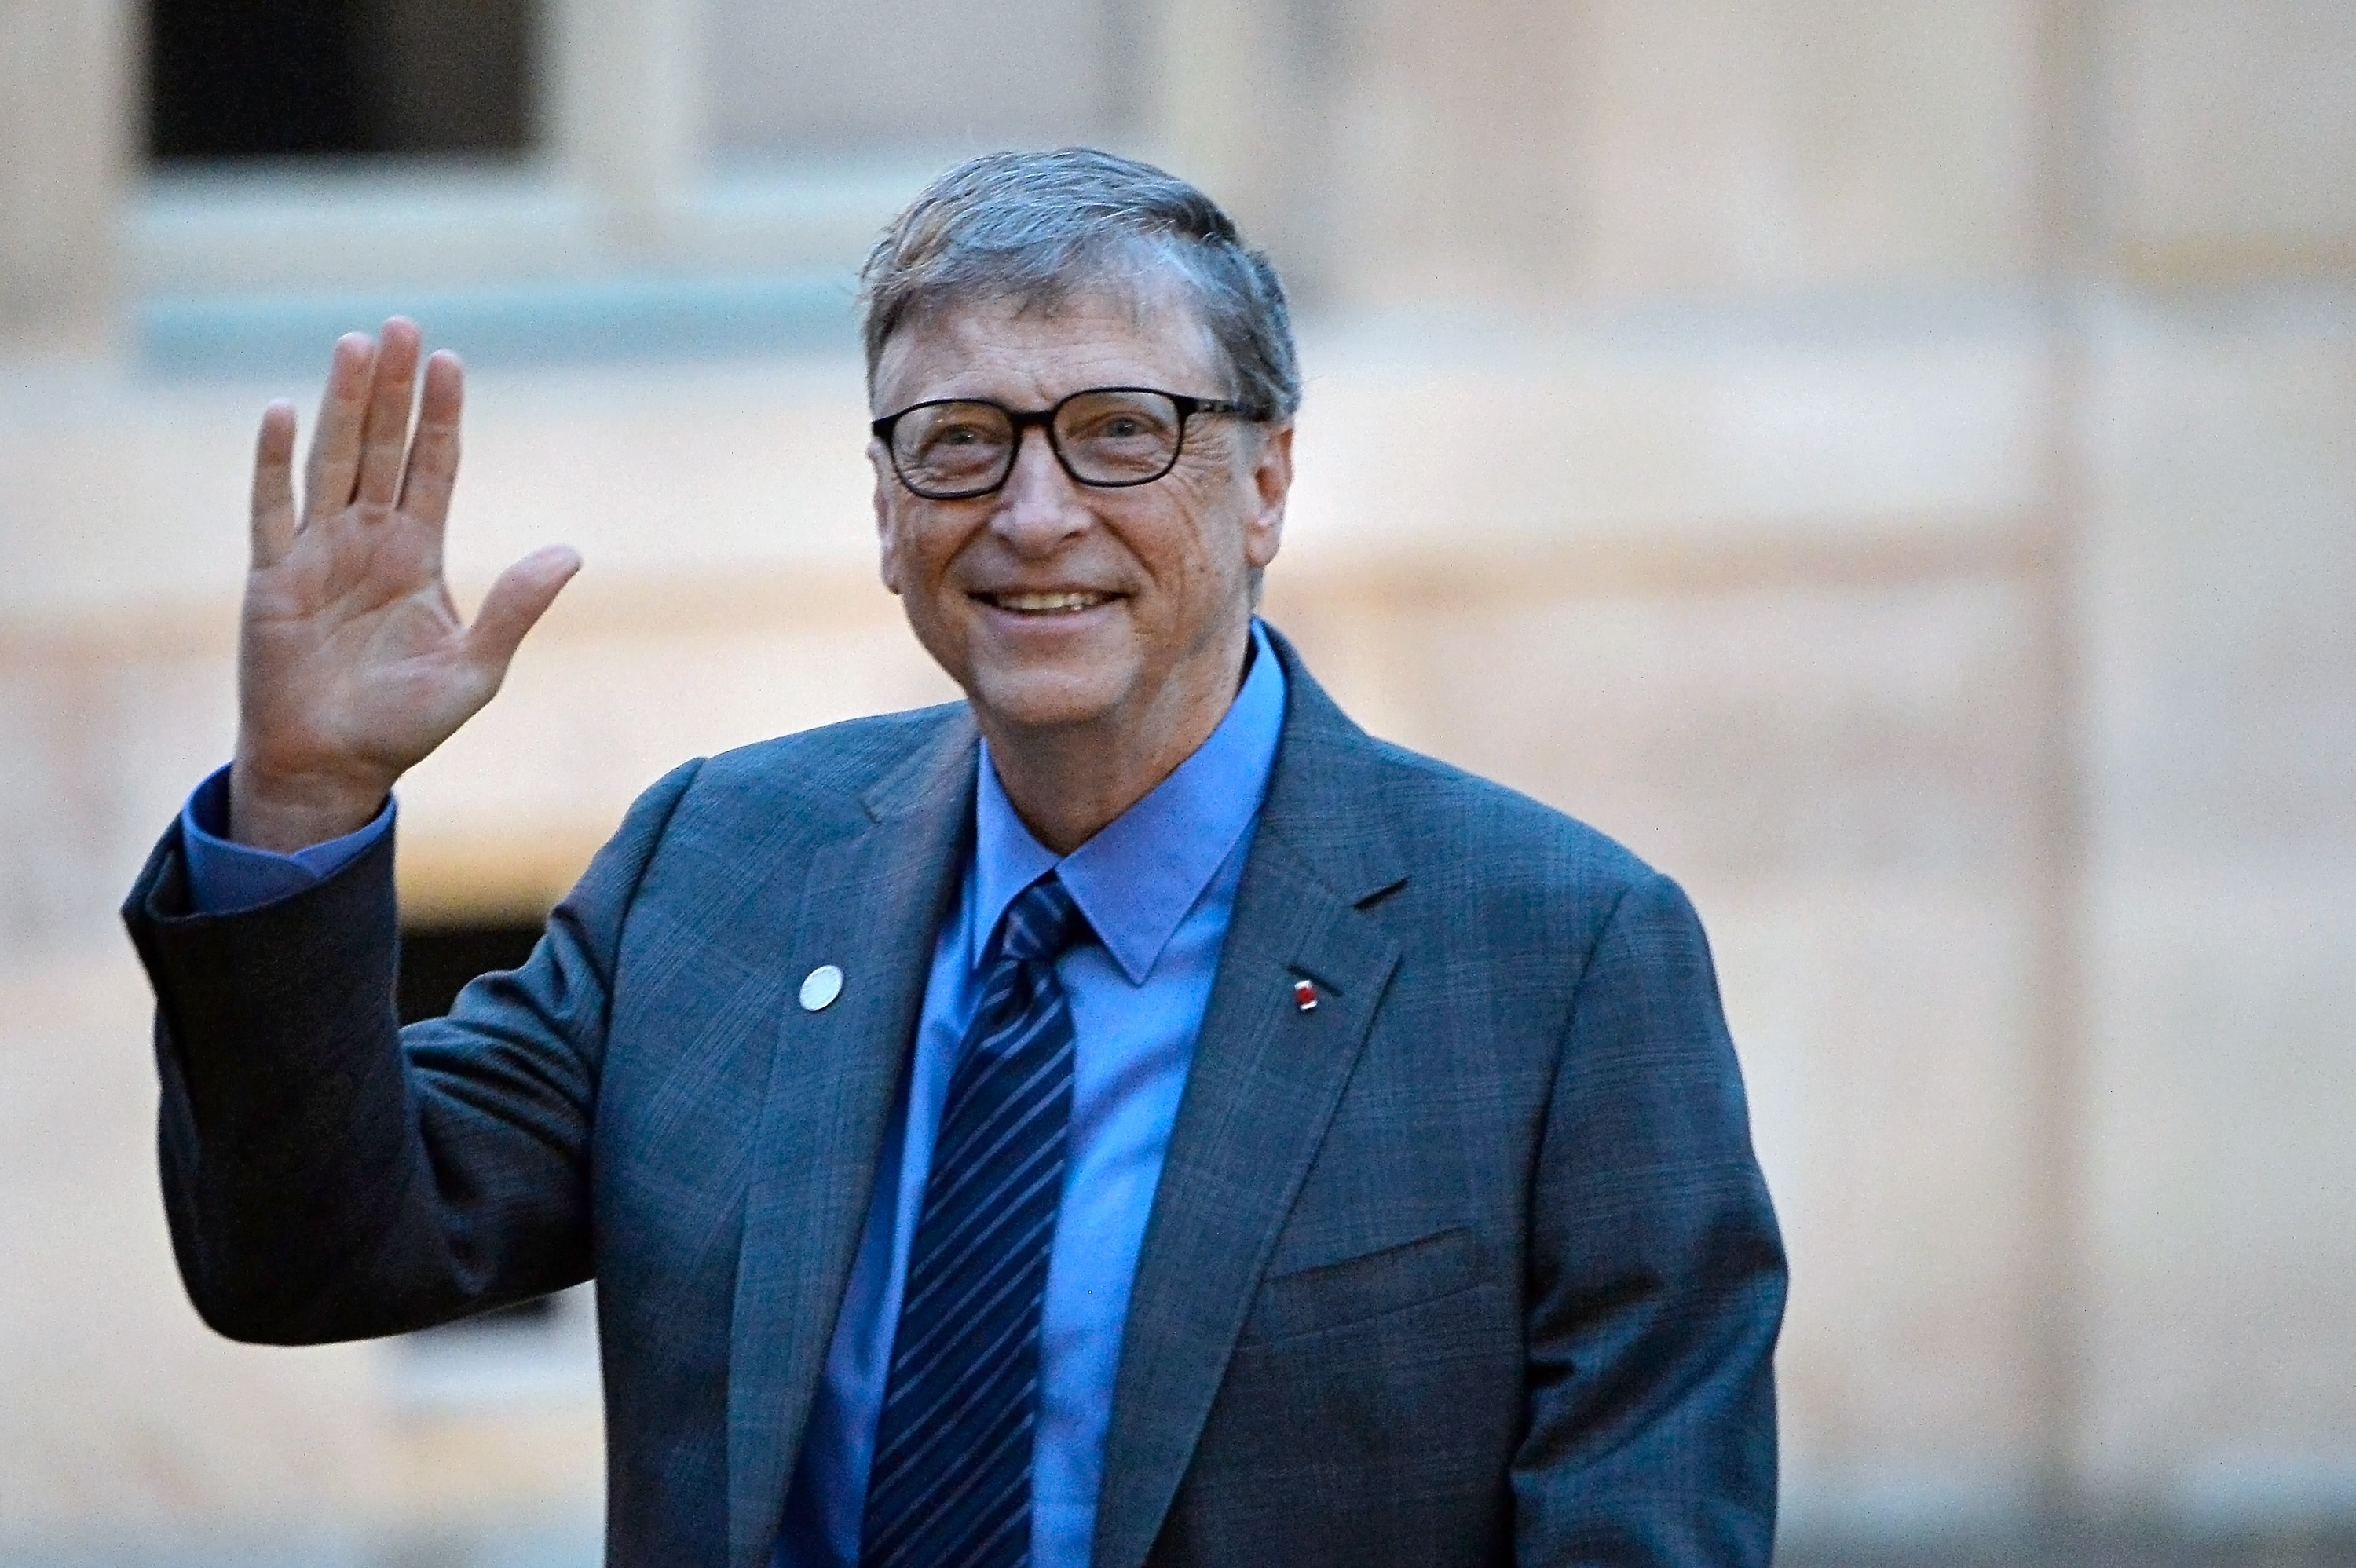 Bill Gates arrives for a meeting with French President Emmanuel Macron as he receives One Planet Summit's international philanthropists at Elysee Palace on December 12, 2017 in Paris, France.